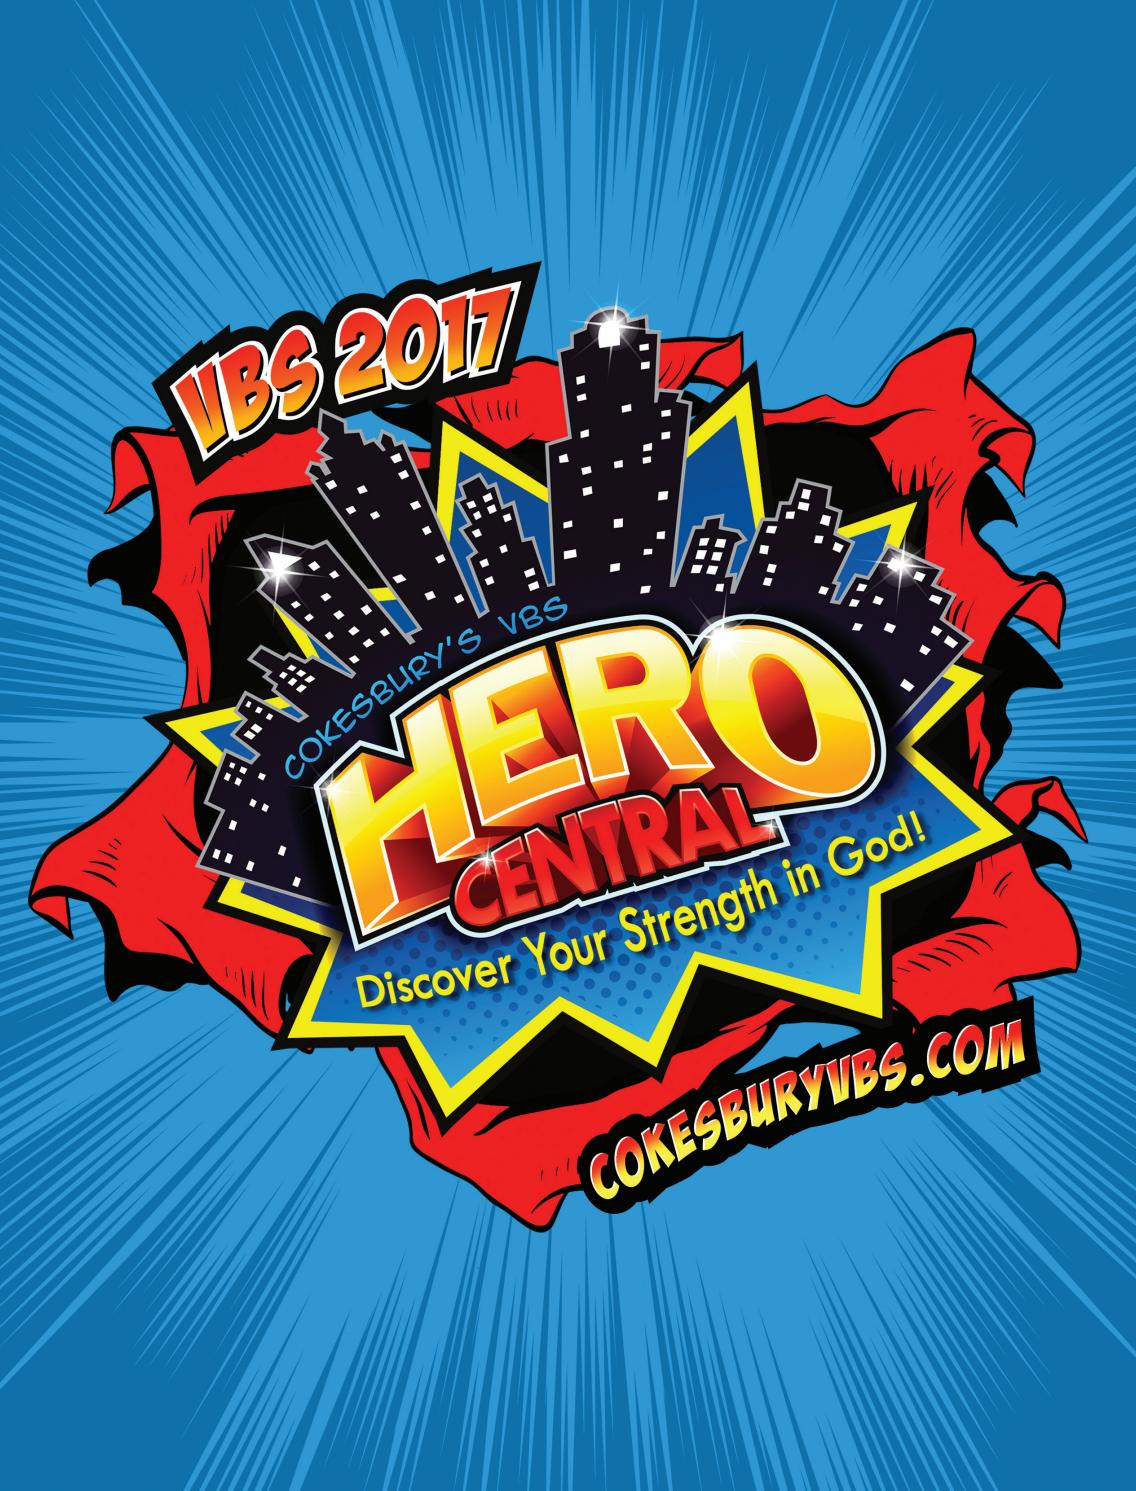 Cokesbury 39 s vbs hero central 2017 catalog by united for Hero central vbs crafts